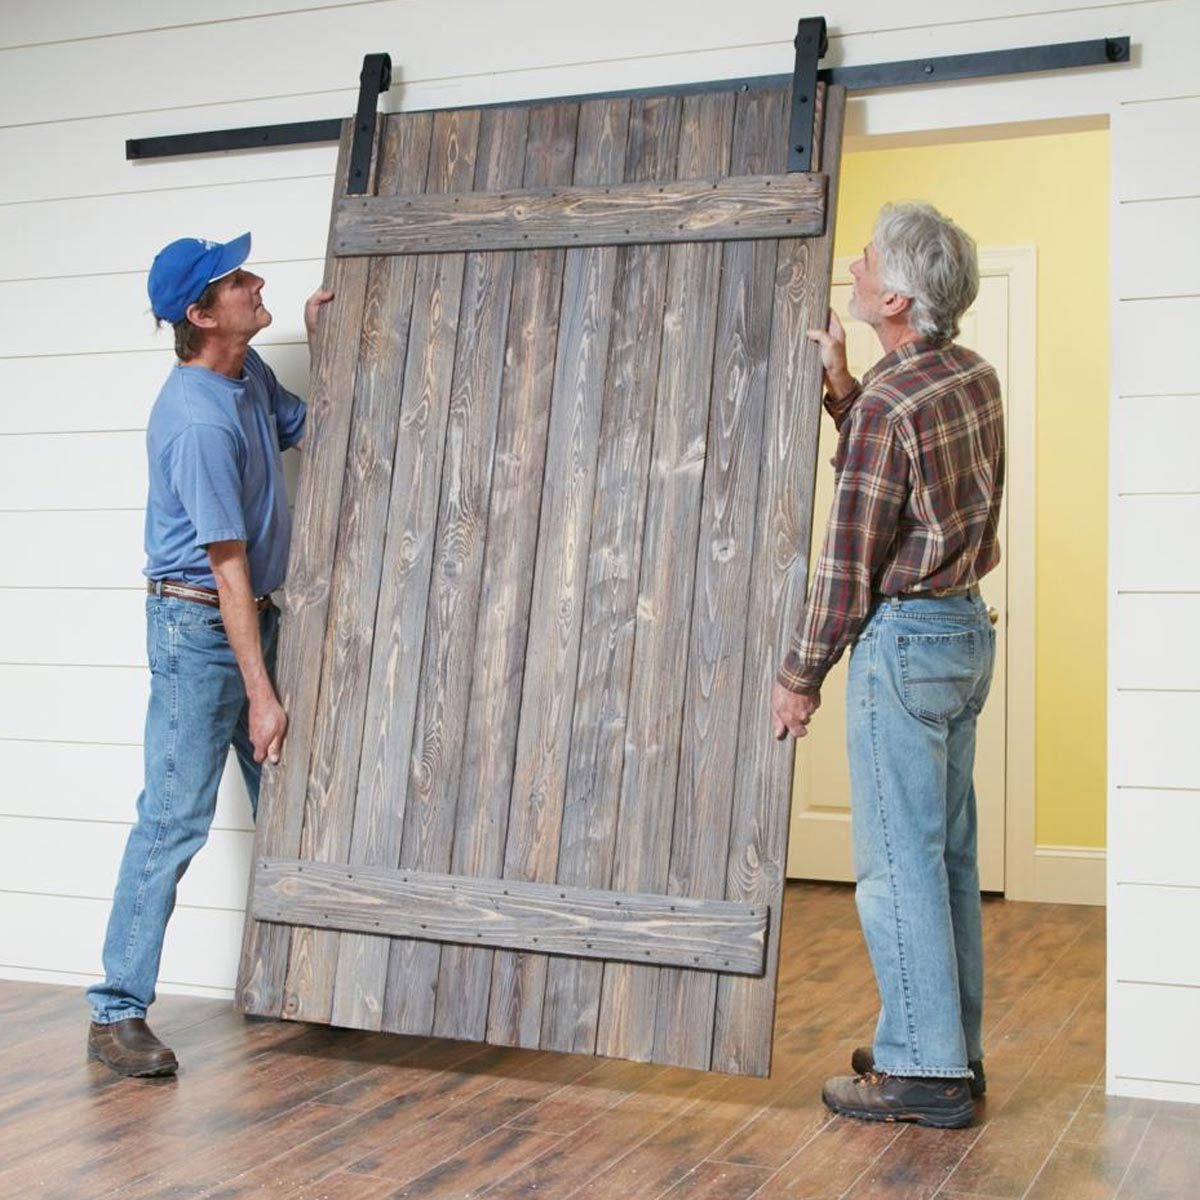 doors bring spirit door some view with barns in country barn your gallery to home buy interior where bathroom